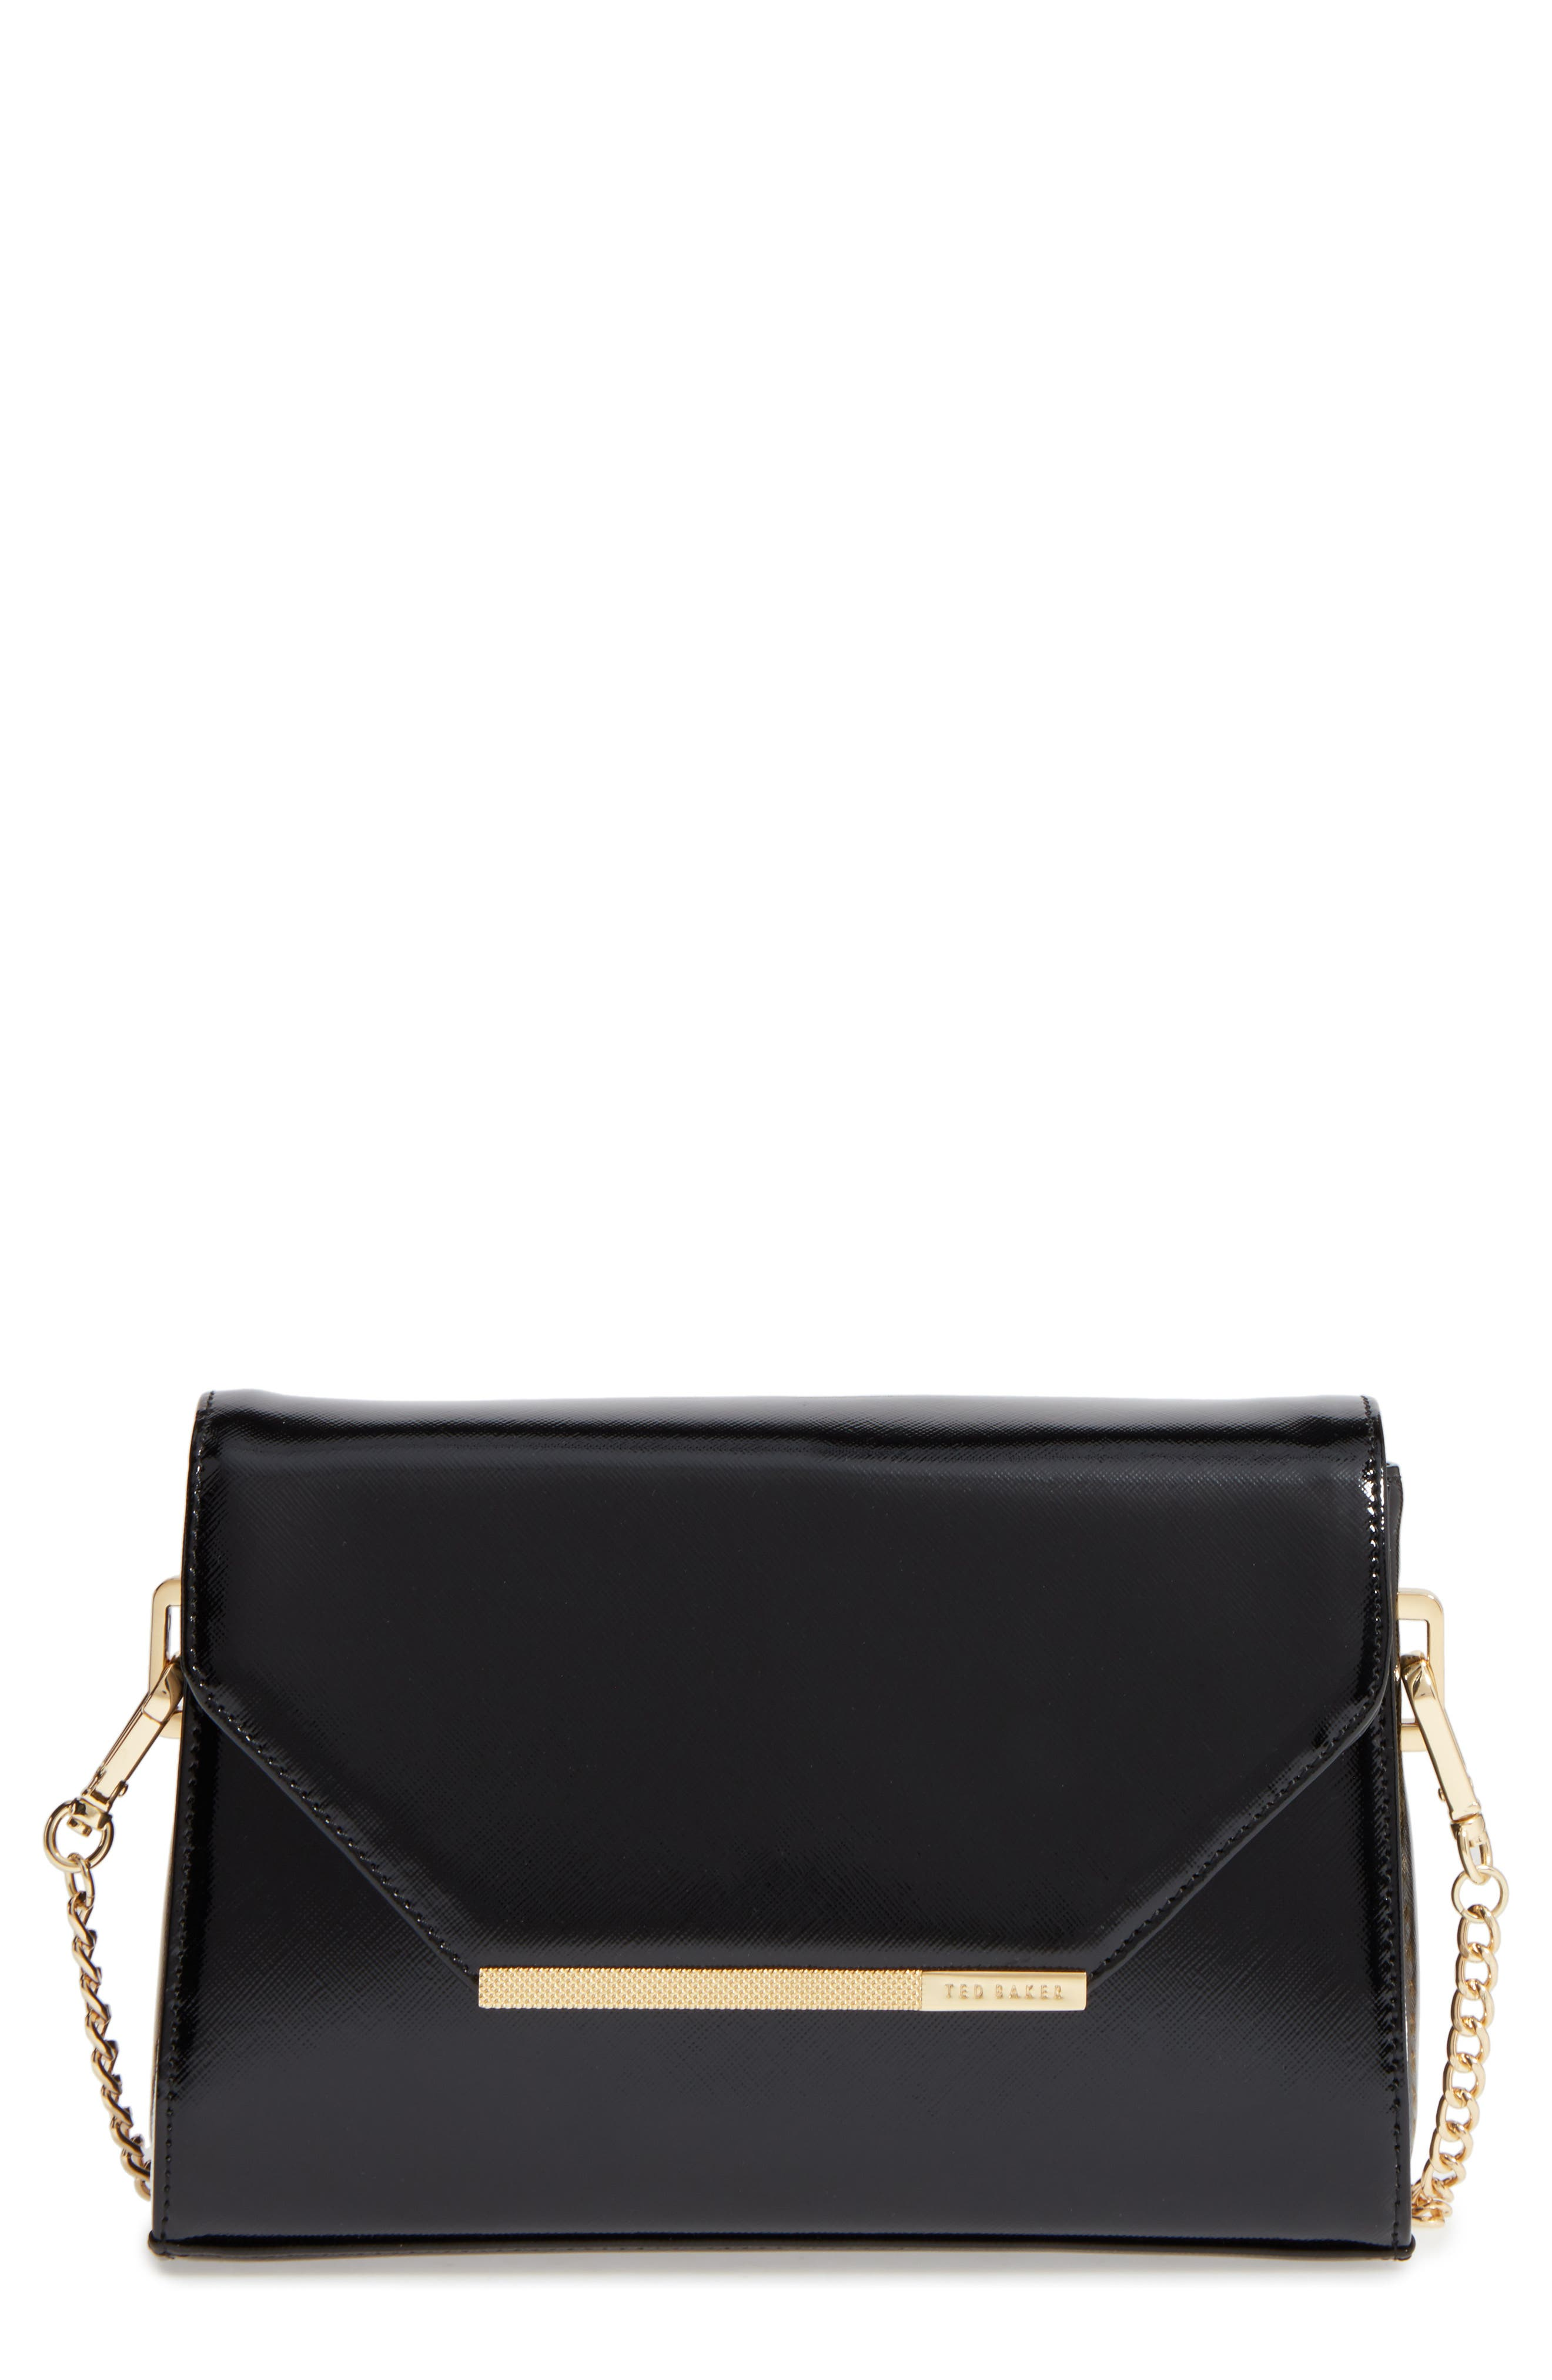 Alternate Image 1 Selected - Ted Baker London Faux Leather Crossbody Bag